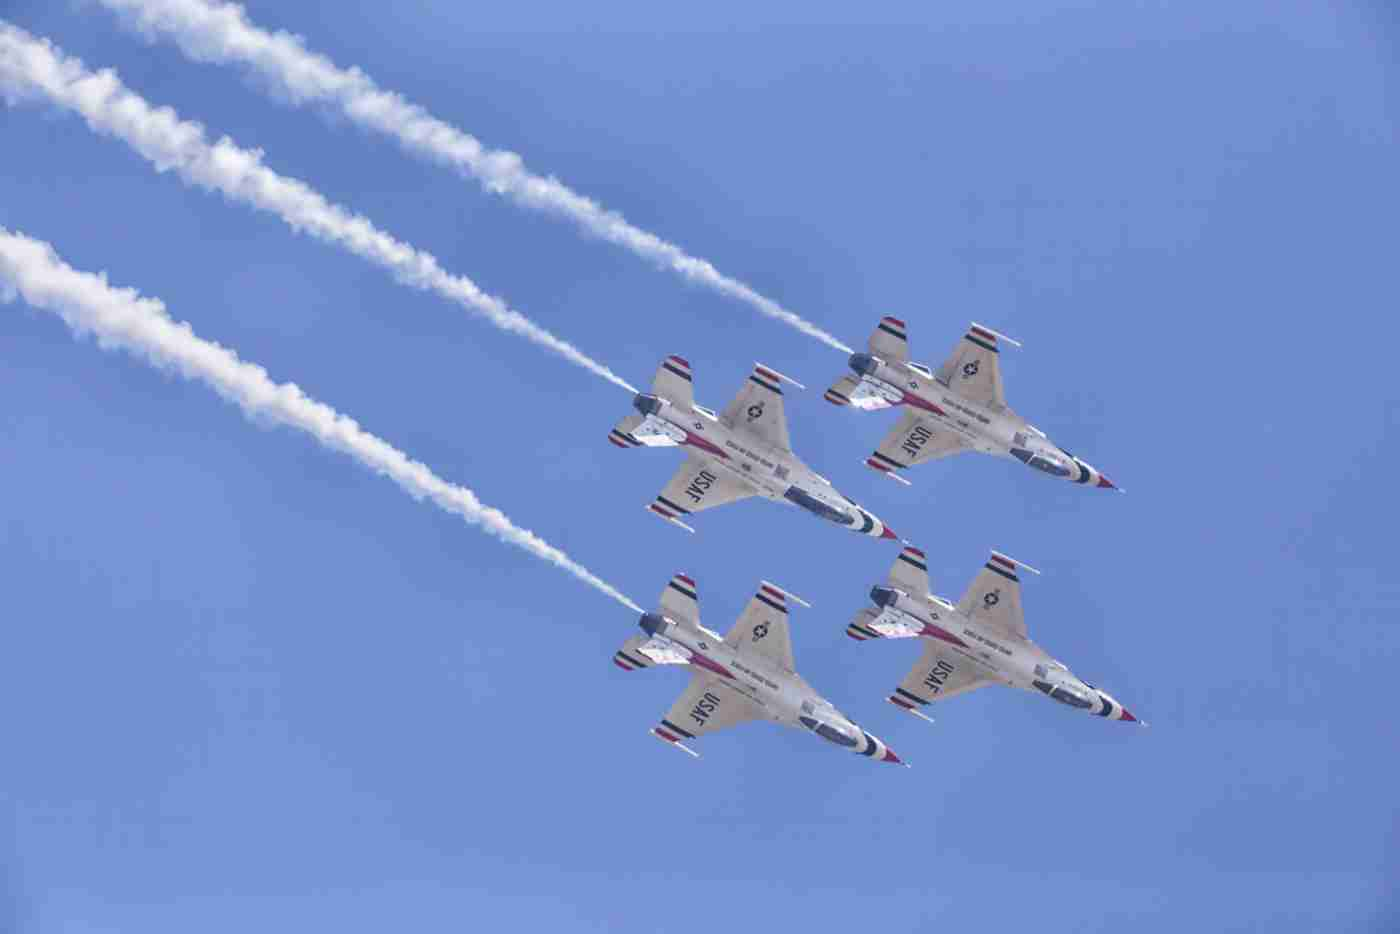 Four Air Force Thunderbird F-16s Flying Downward